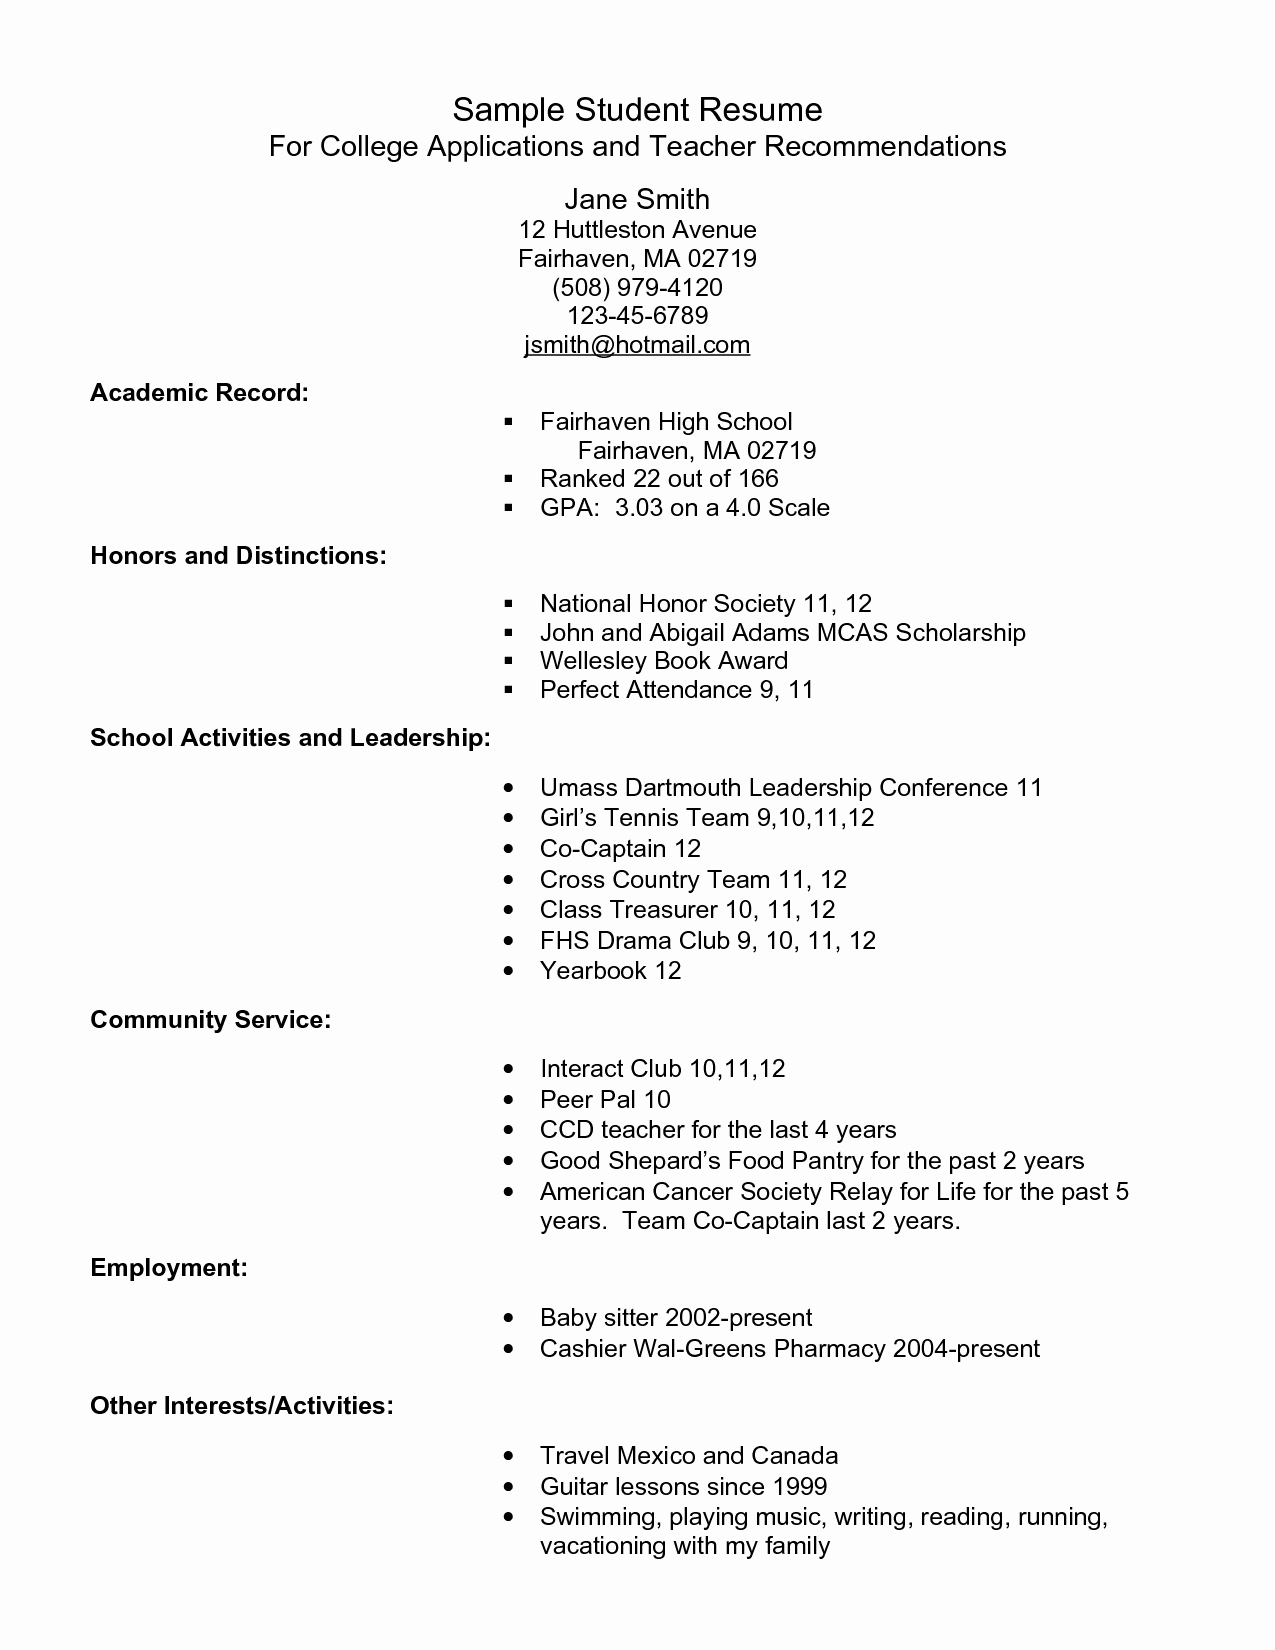 College Admissions Resume Templates Inspirational Example Resume for High School Students for College